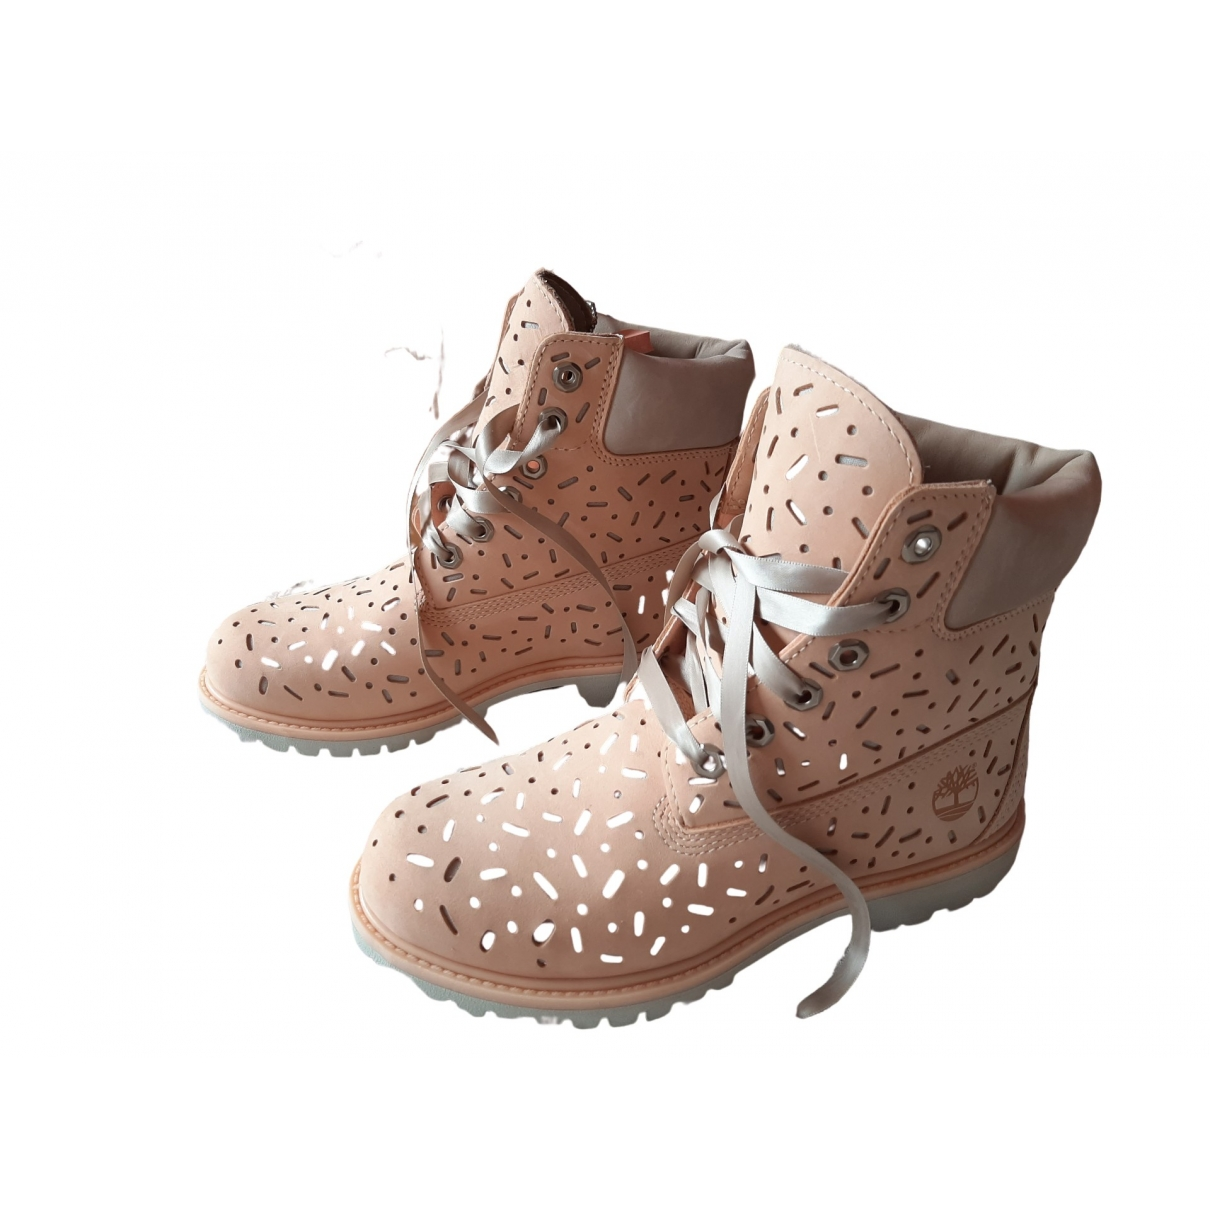 Timberland \N Beige Leather Ankle boots for Women 38 EU